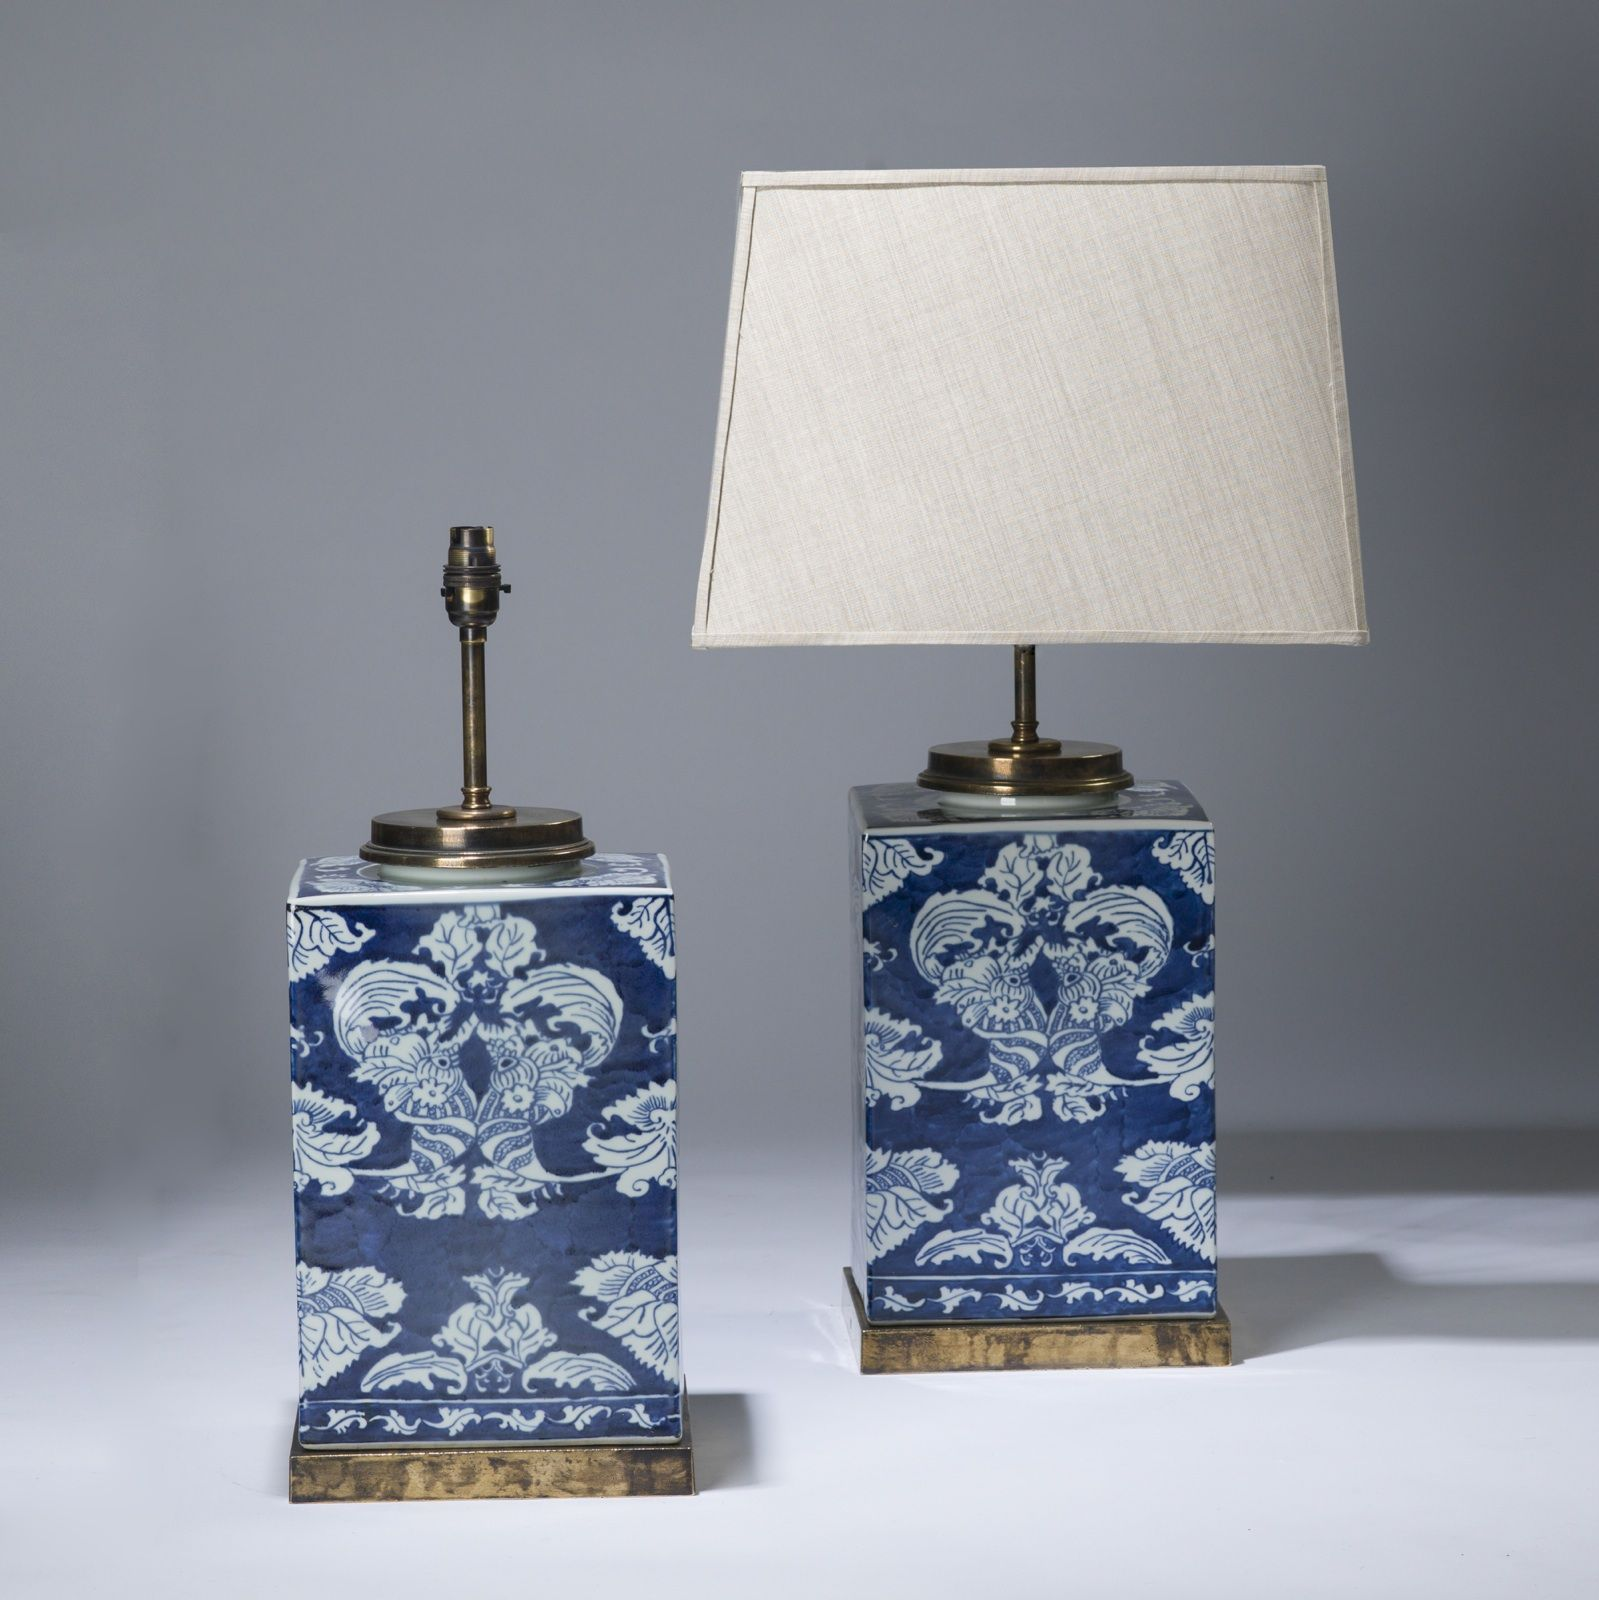 Pair Of Medium Blue White Square Ceramic Lamps On Distressed Brass Bases T3617 Tyson London Decorative Lighting A White Ceramic Lamps Ceramic Lamp Lamp